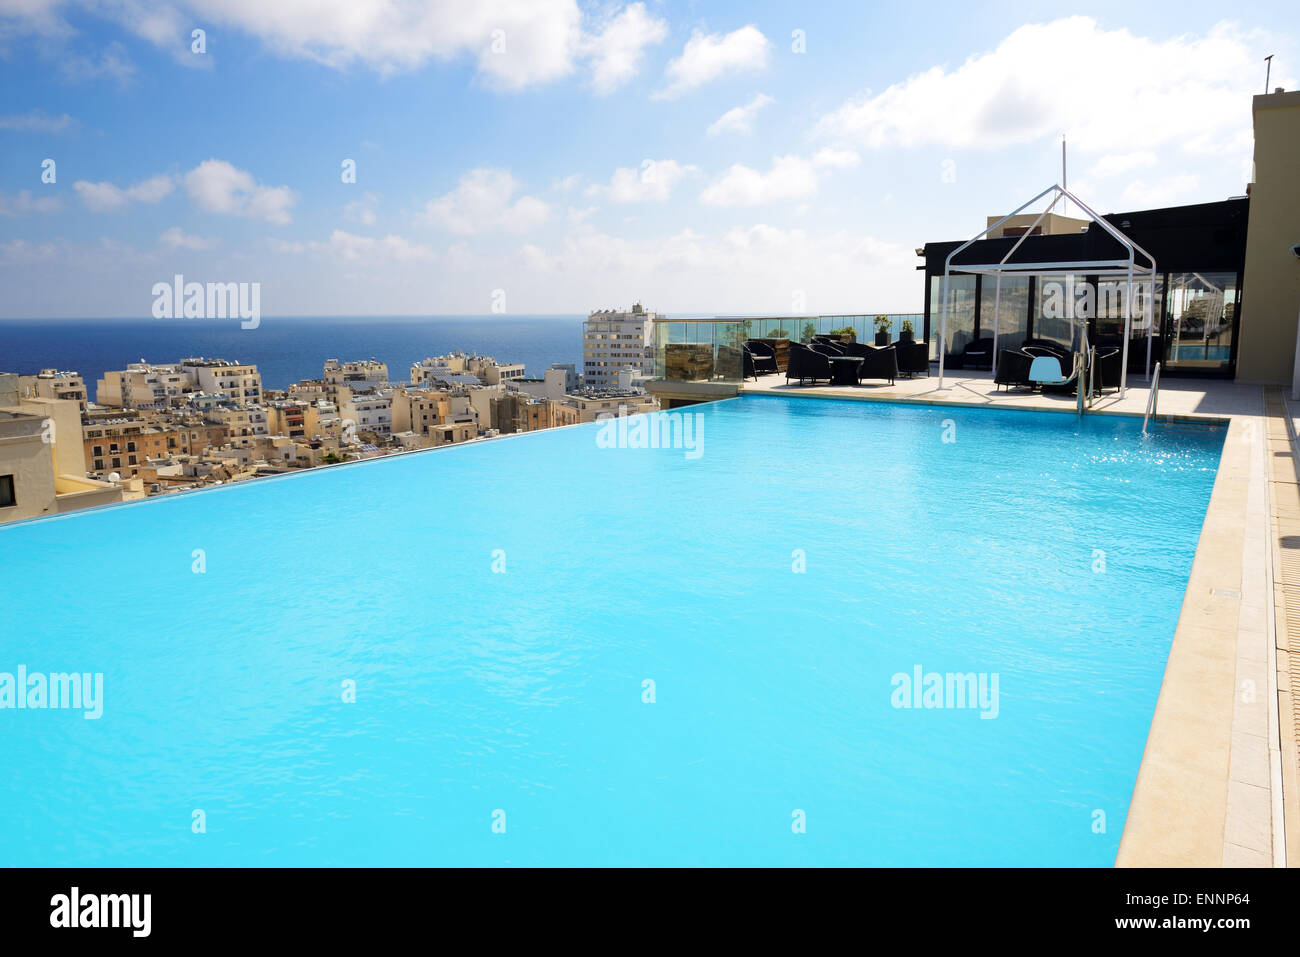 Pool On Top Of Building : The swimming pool on top of building luxury hotel